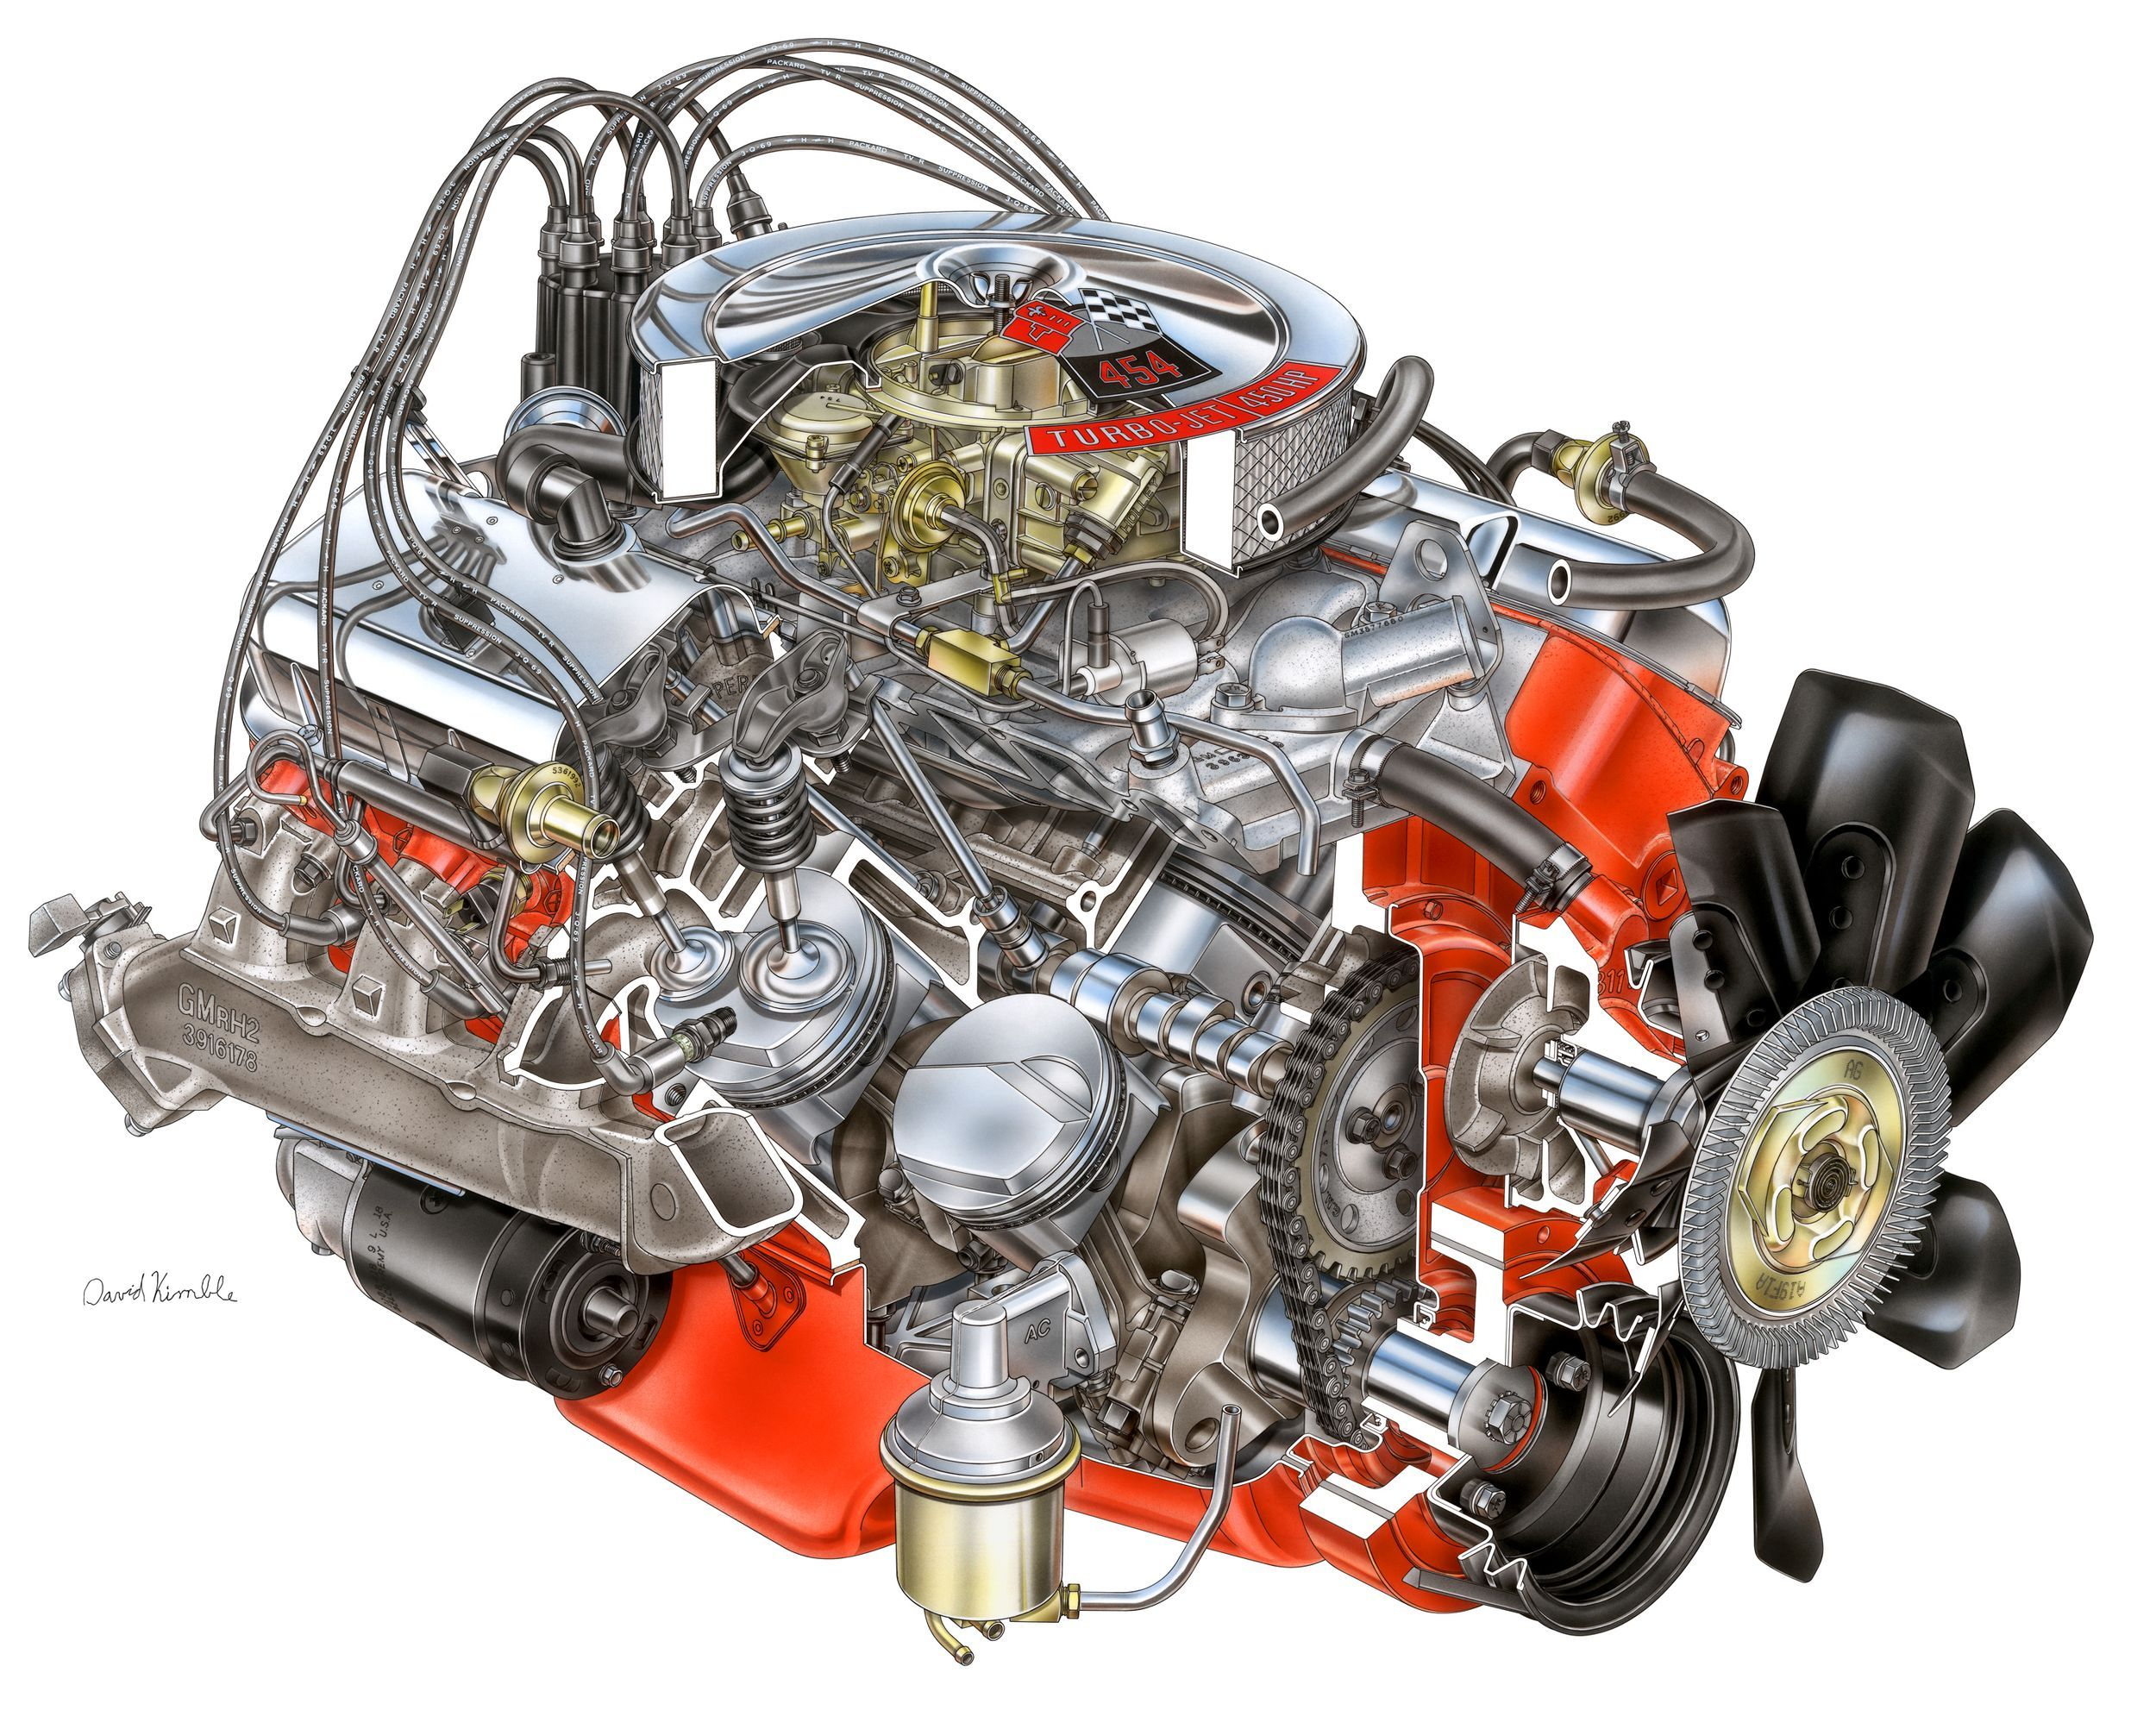 chevrolet ls6 454 450hp engine cutaway [ 2500 x 2005 Pixel ]